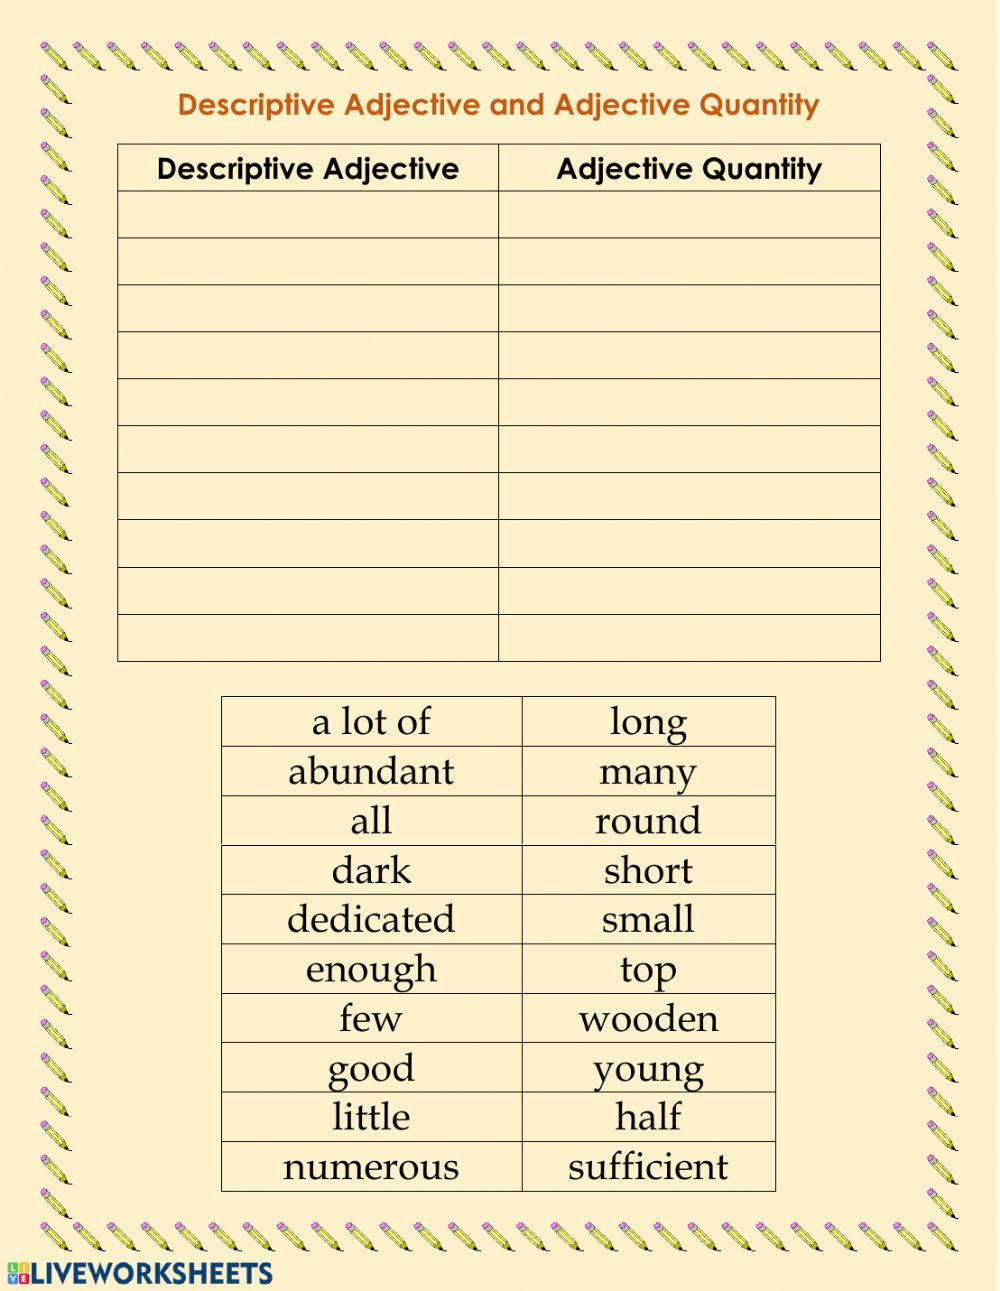 medium resolution of Descriptive adjective and adjective quantity worksheet